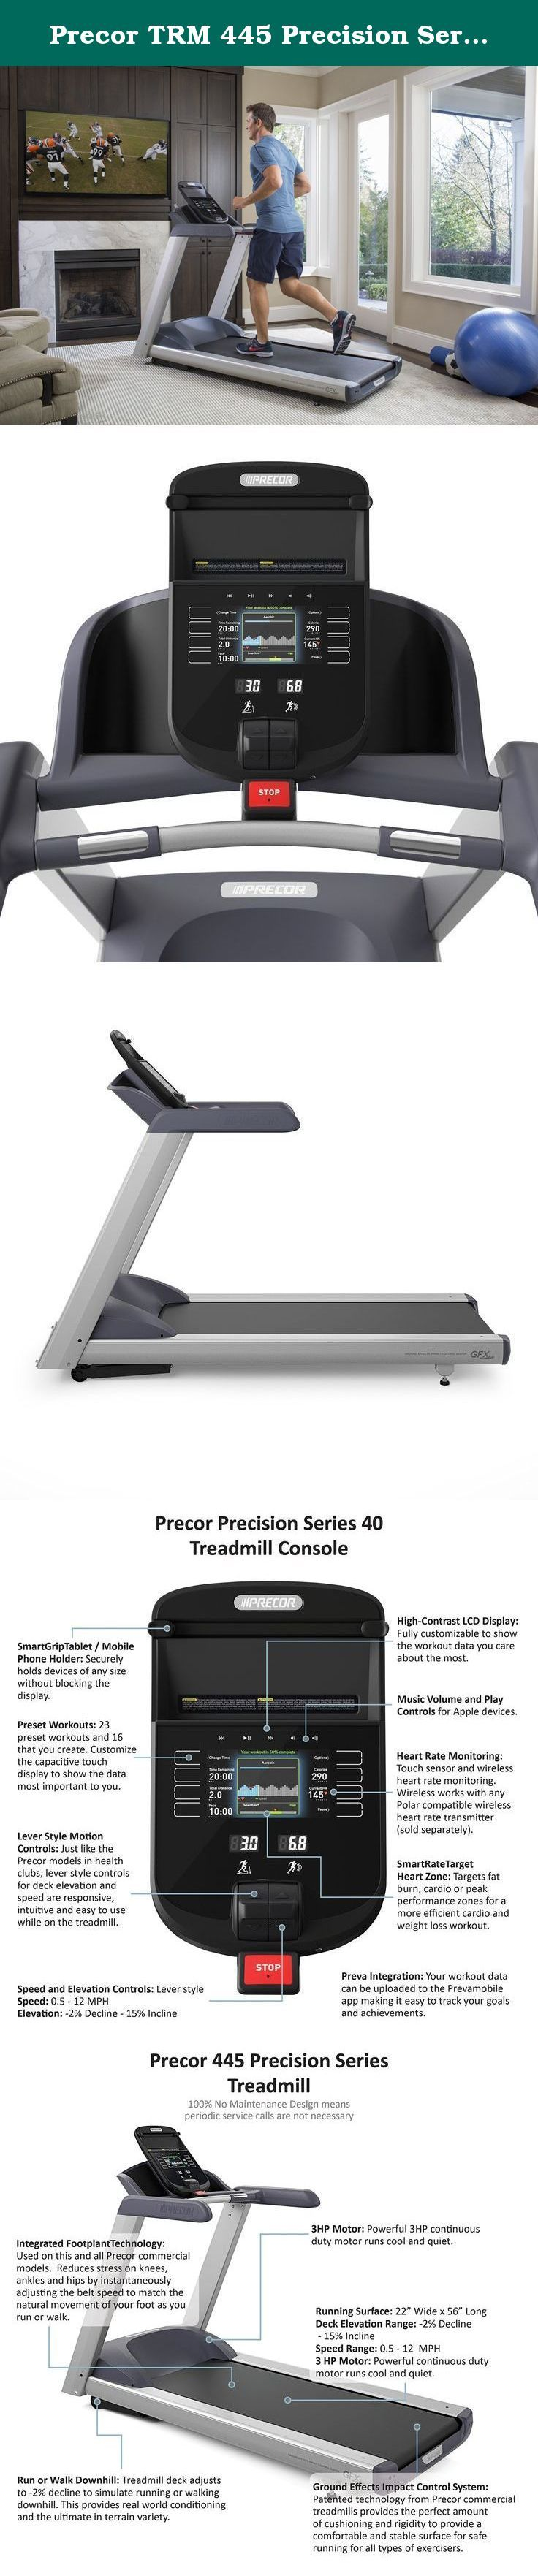 Precor TRM 445 Precision Series Treadmill. Integrated Foot plant Technology reduces stress on knees, ankles and hips by adjusting the belt speed to match the natural movement of your feet. Patented Ground Effects Impact Control technology uses precisely engineered shock absorbers to provide the perfect amount of cushioning. 23 preset and 16 user-defined workouts; customizable capacitive touch display shows the data most important to you. Treadmill deck adjusts from +15% incline to -2%...